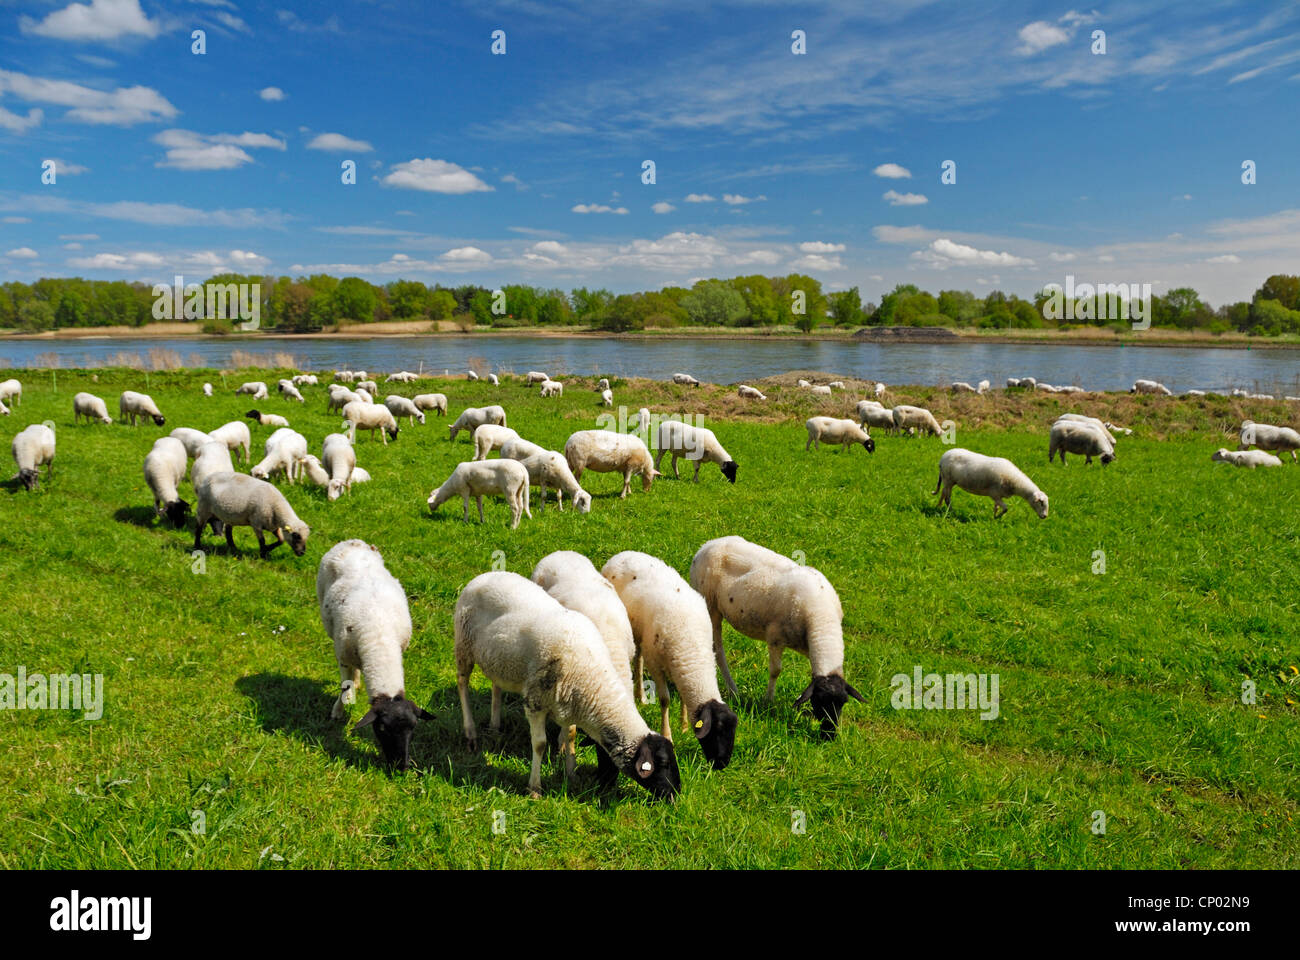 domestic sheep (Ovis ammon f. aries), grazing sheep in the meadow of Elbe river, Germany, Hamburg - Stock Image